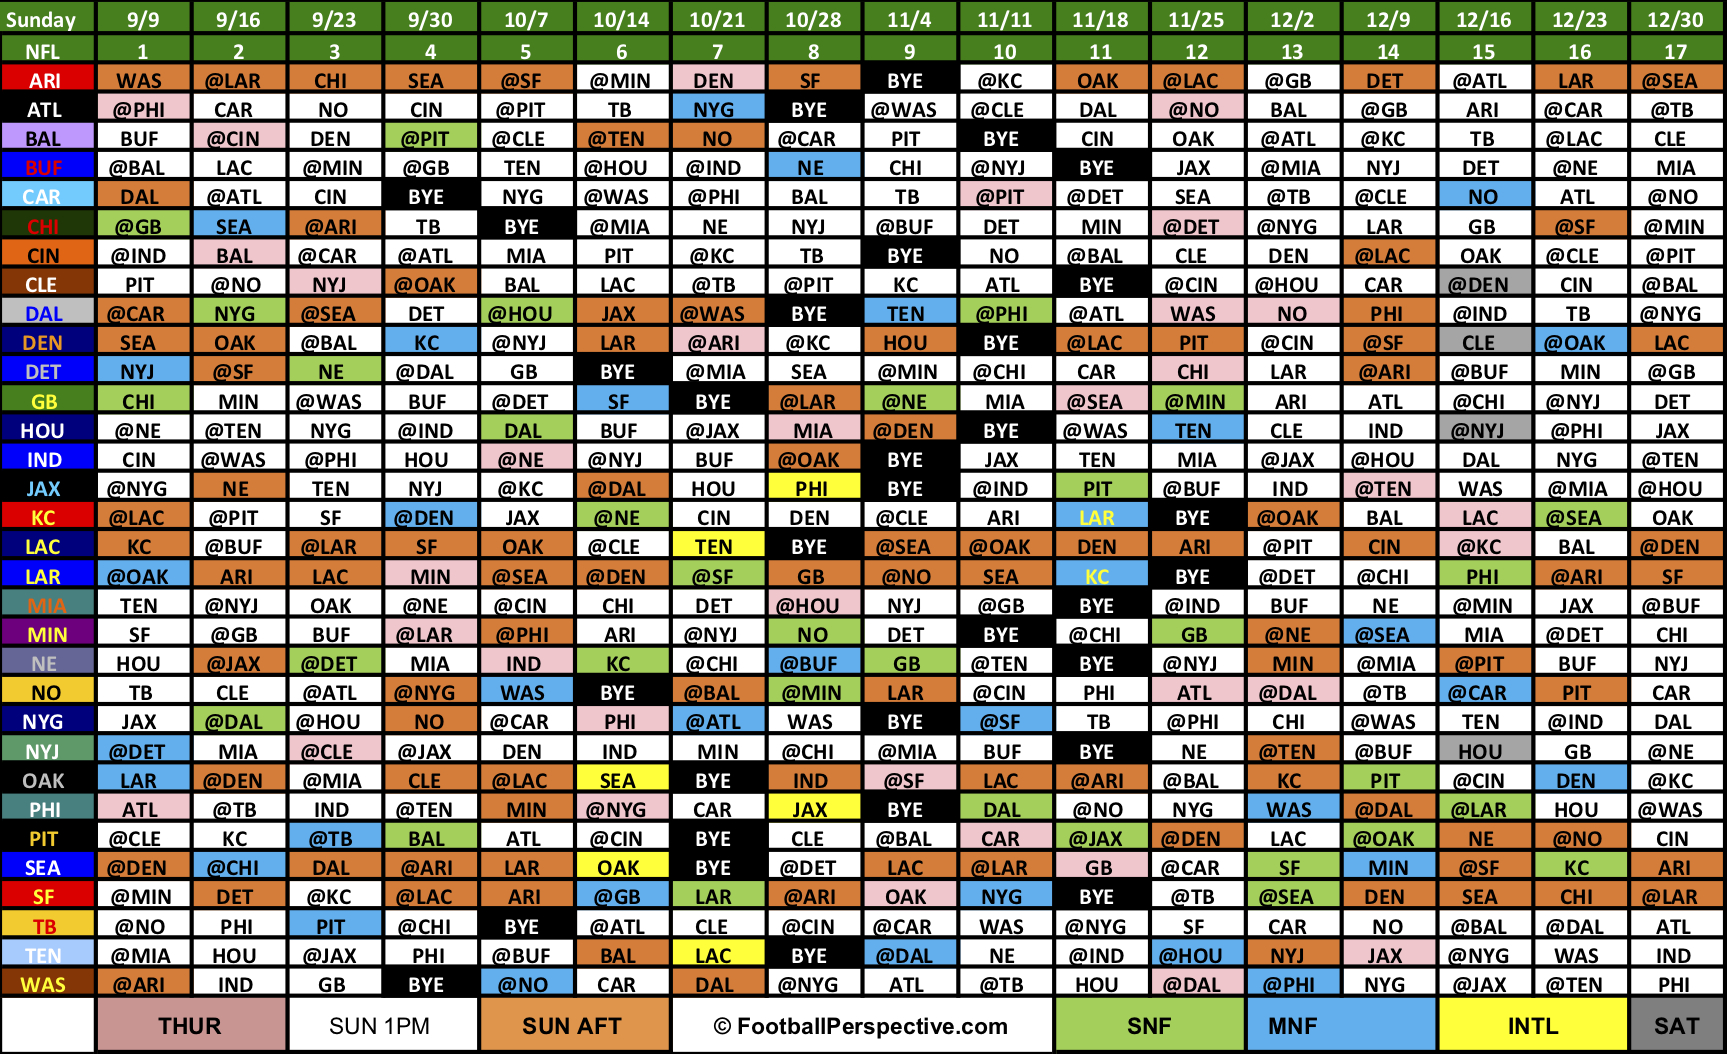 2018 Excel Spreadsheet Of Nfl Schedule pertaining to The 2018 Nfl Schedule